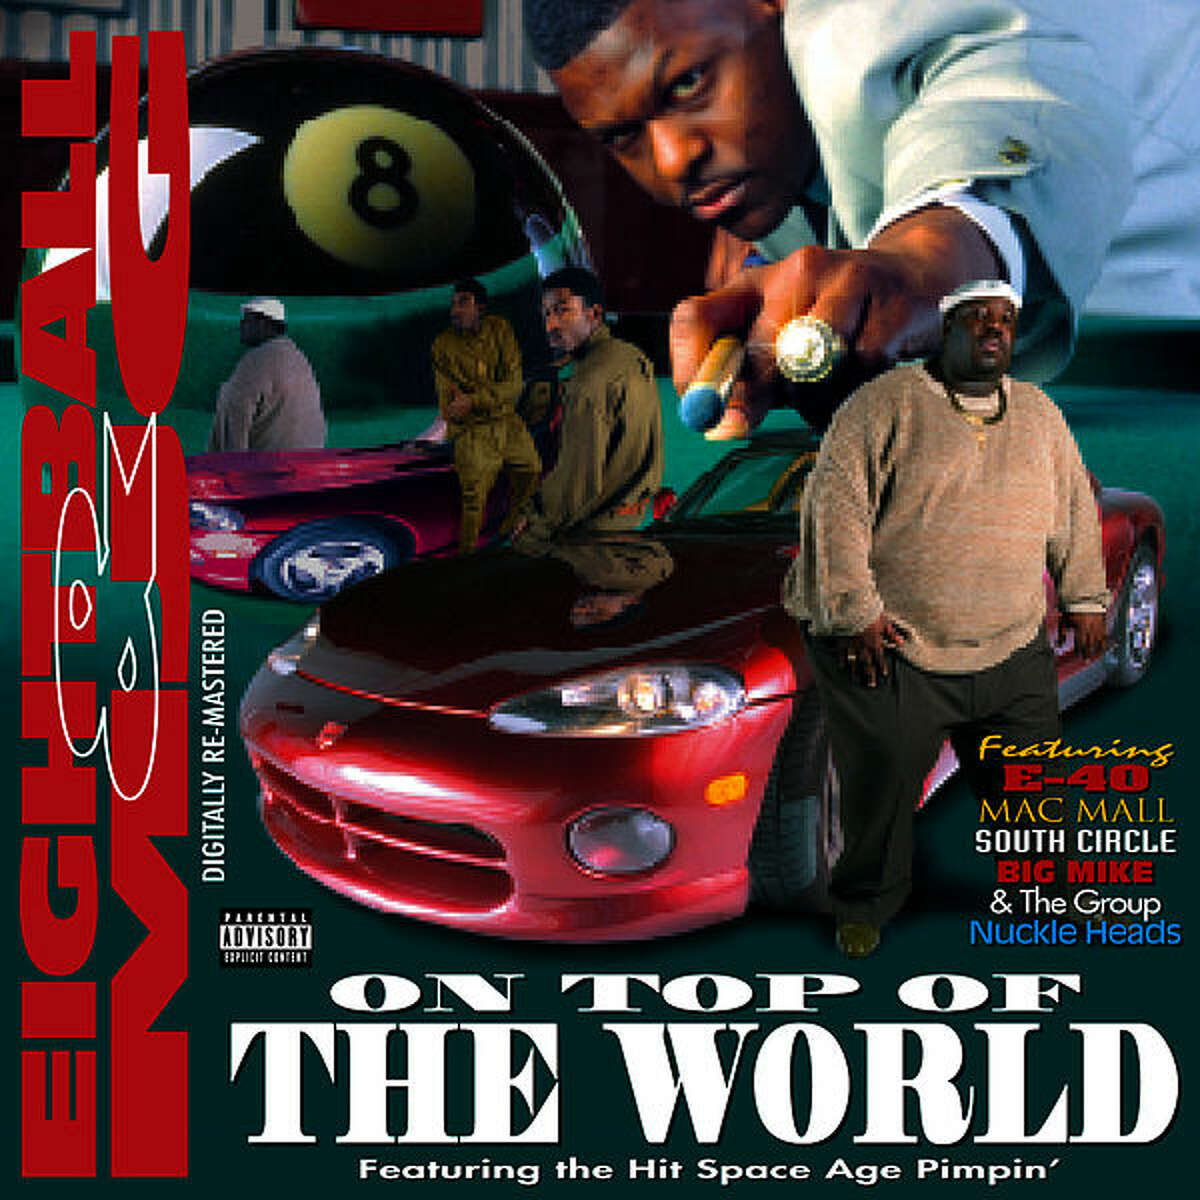 Eightball & MJG- On Top Of The World (1995). Suave House Records, Houston, Texas.